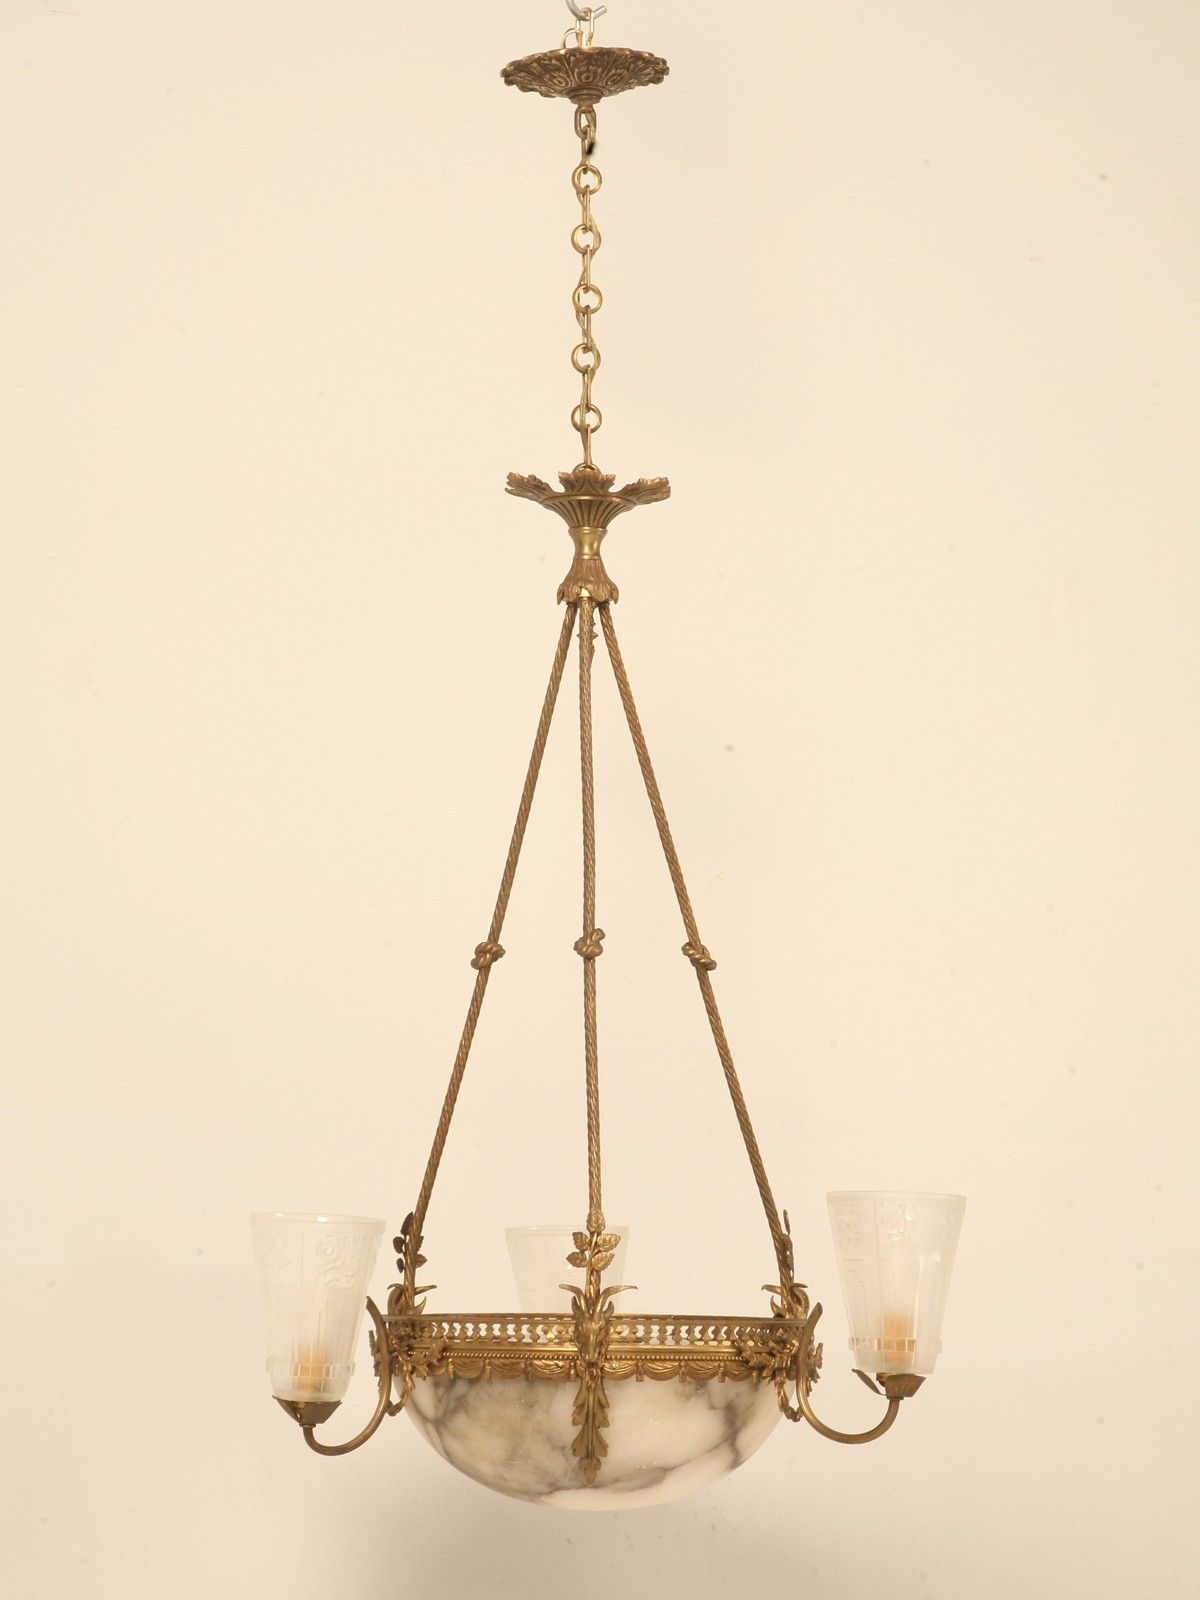 Though This French Chandelier Overlaps Style Wise, It Doesnt Make